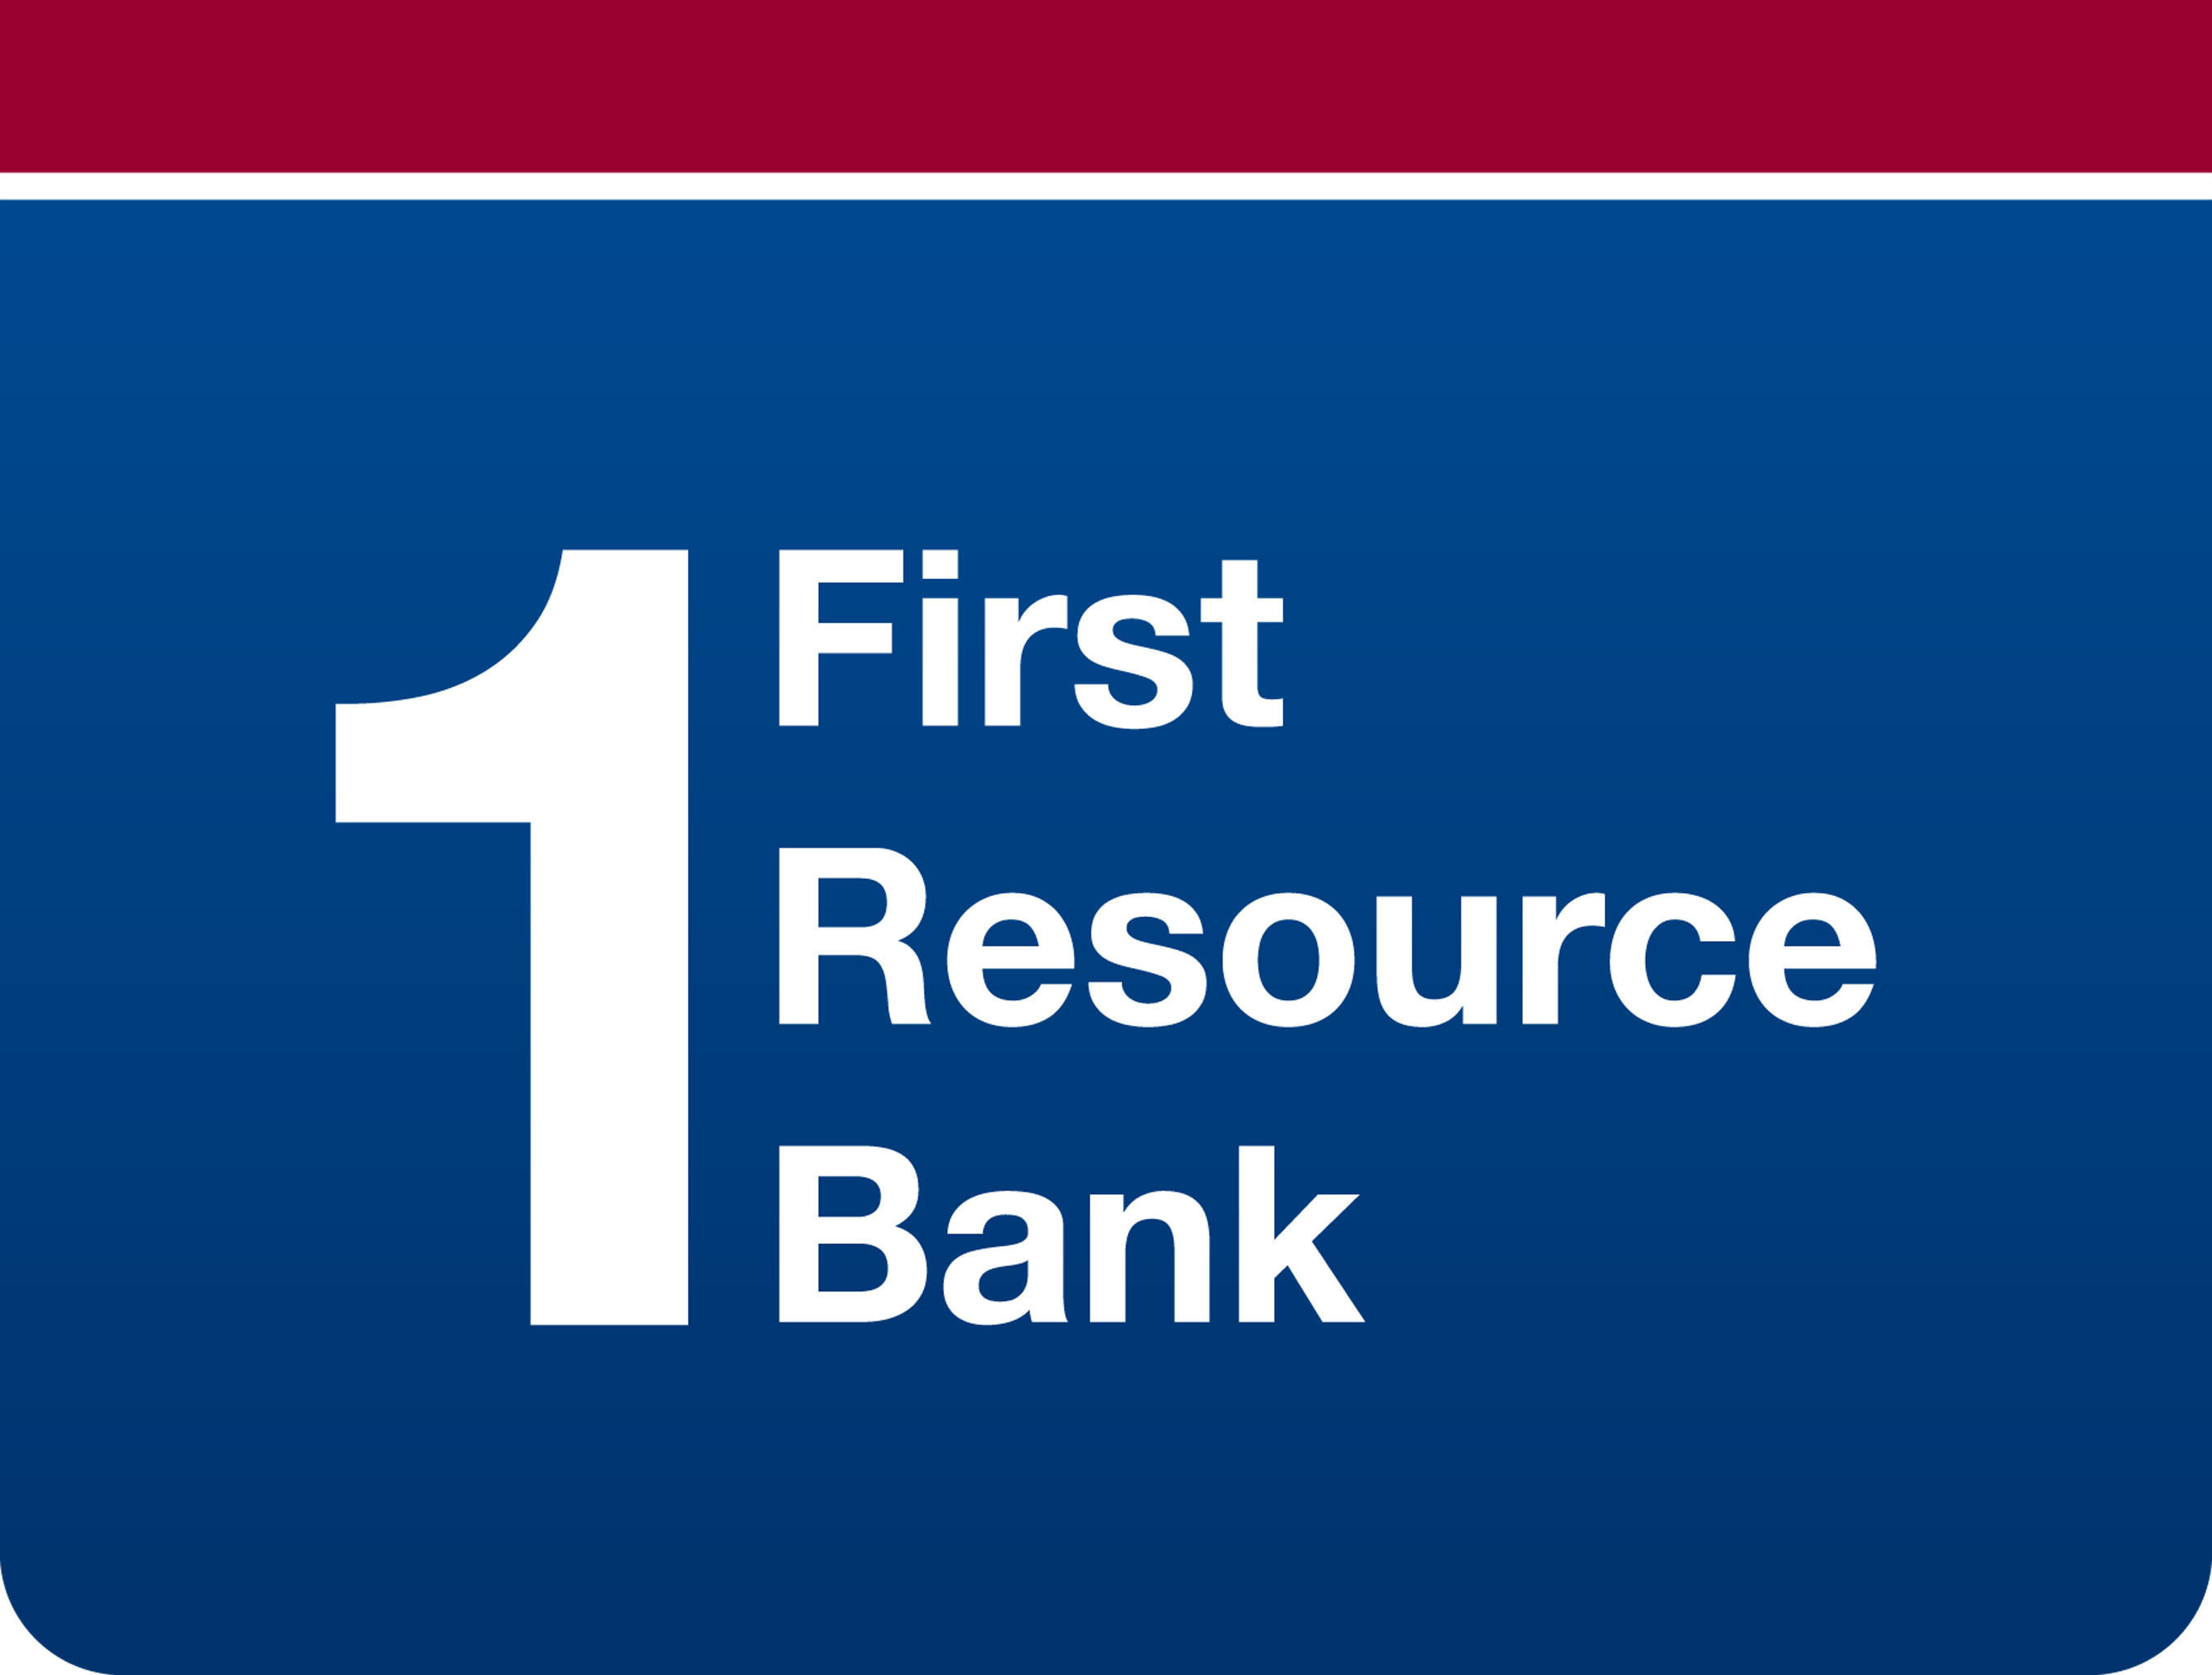 First Resource Bank is proud to be a community bank that believes in providing exceptional service, managing ...